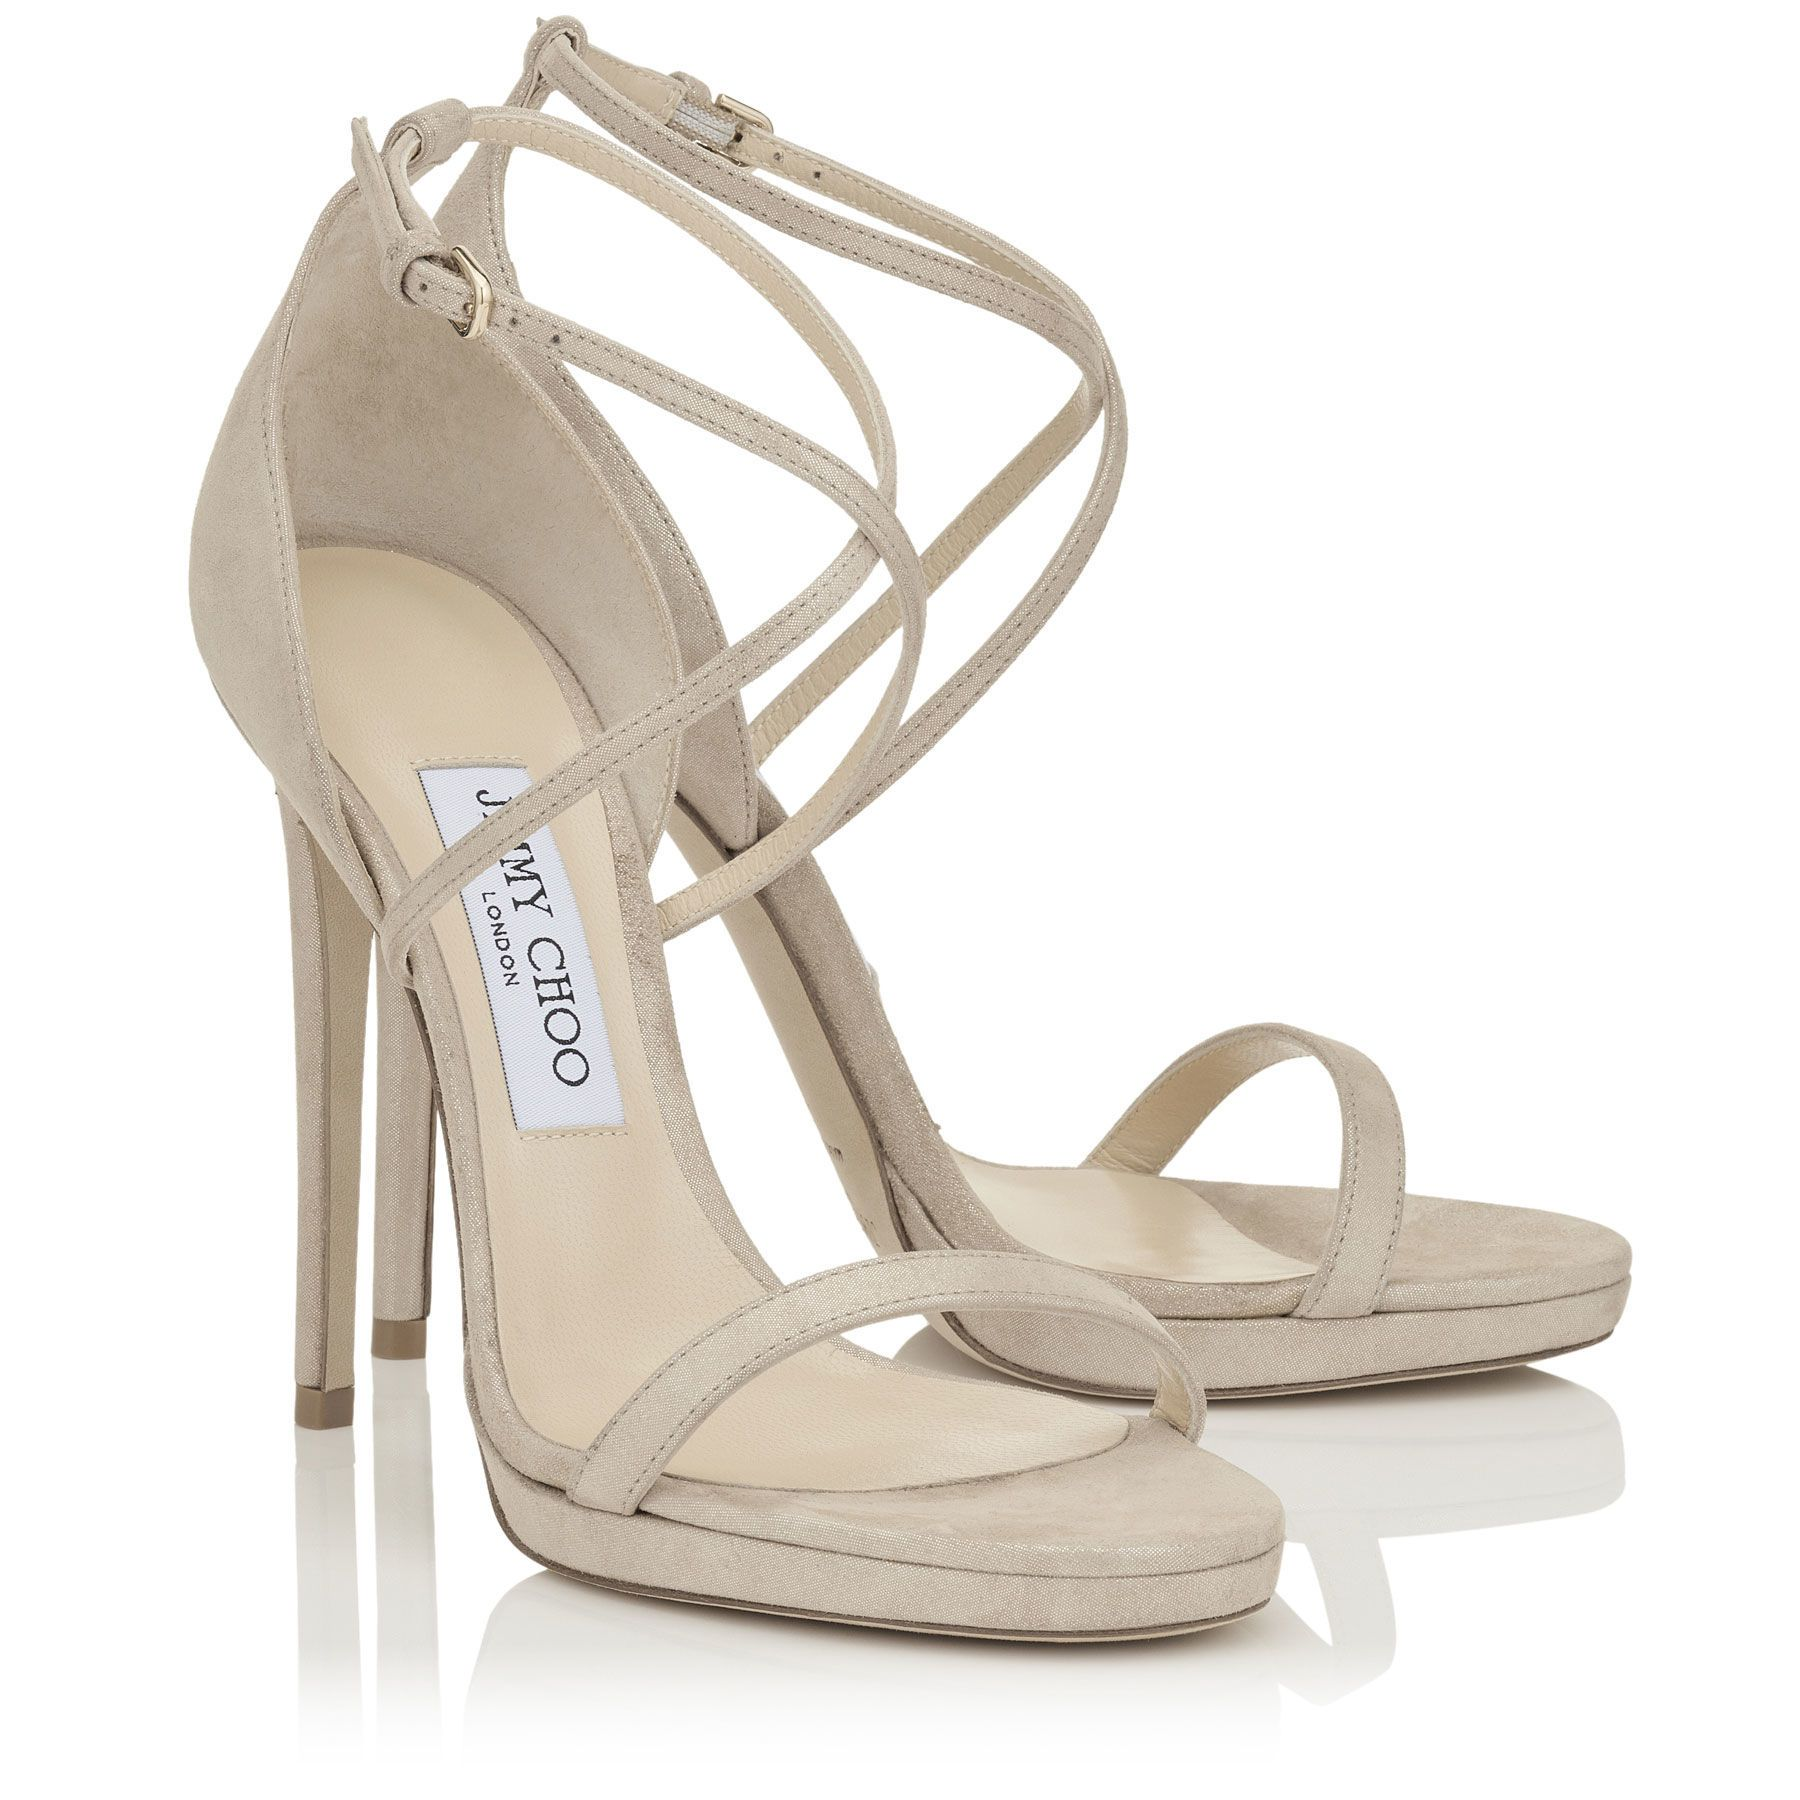 bbc11cba87d0 Sand Shimmer Suede Sandals